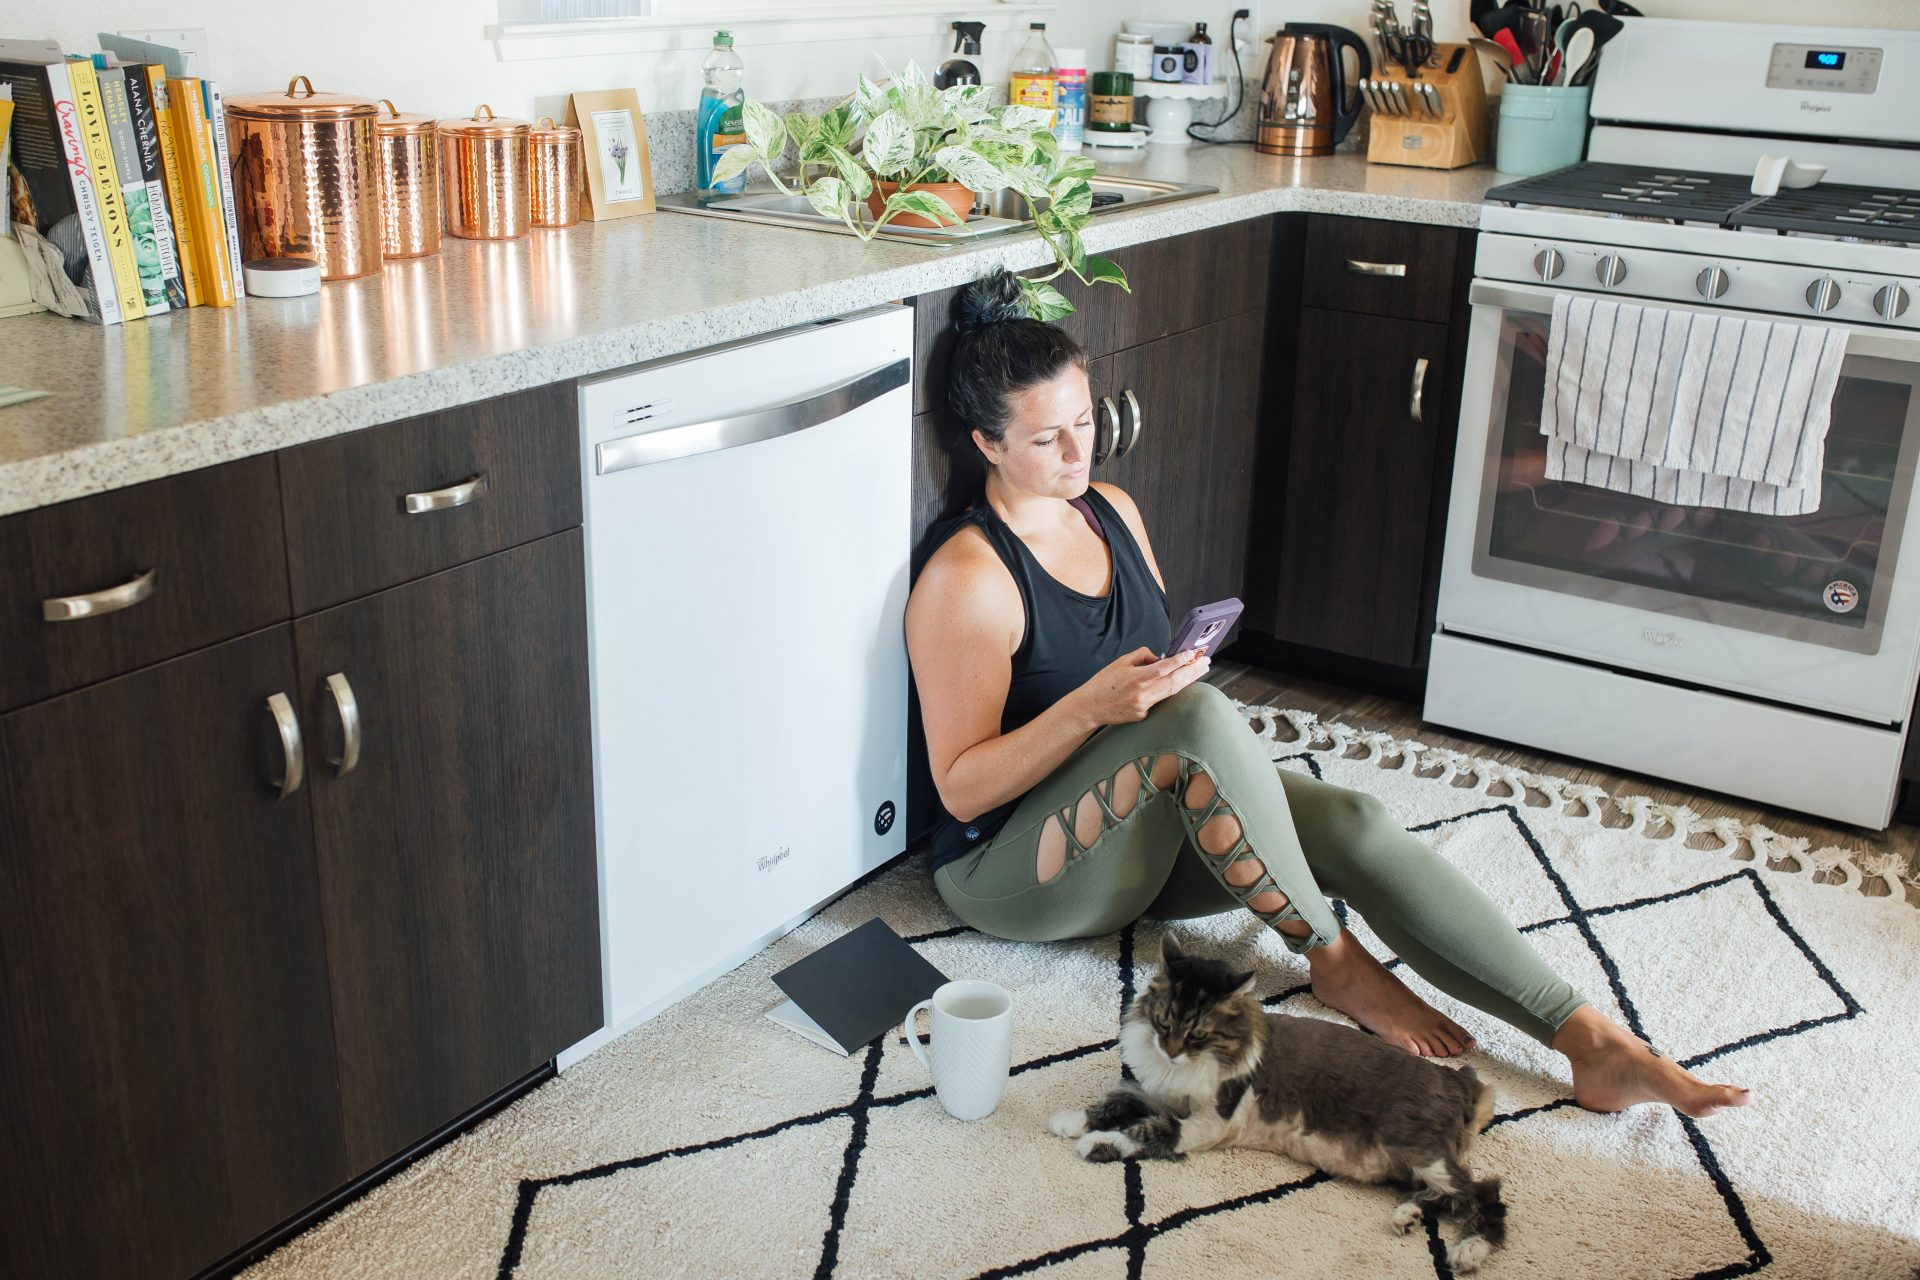 Thoughts While Sitting On The Kitchen Floor – A Loved Life